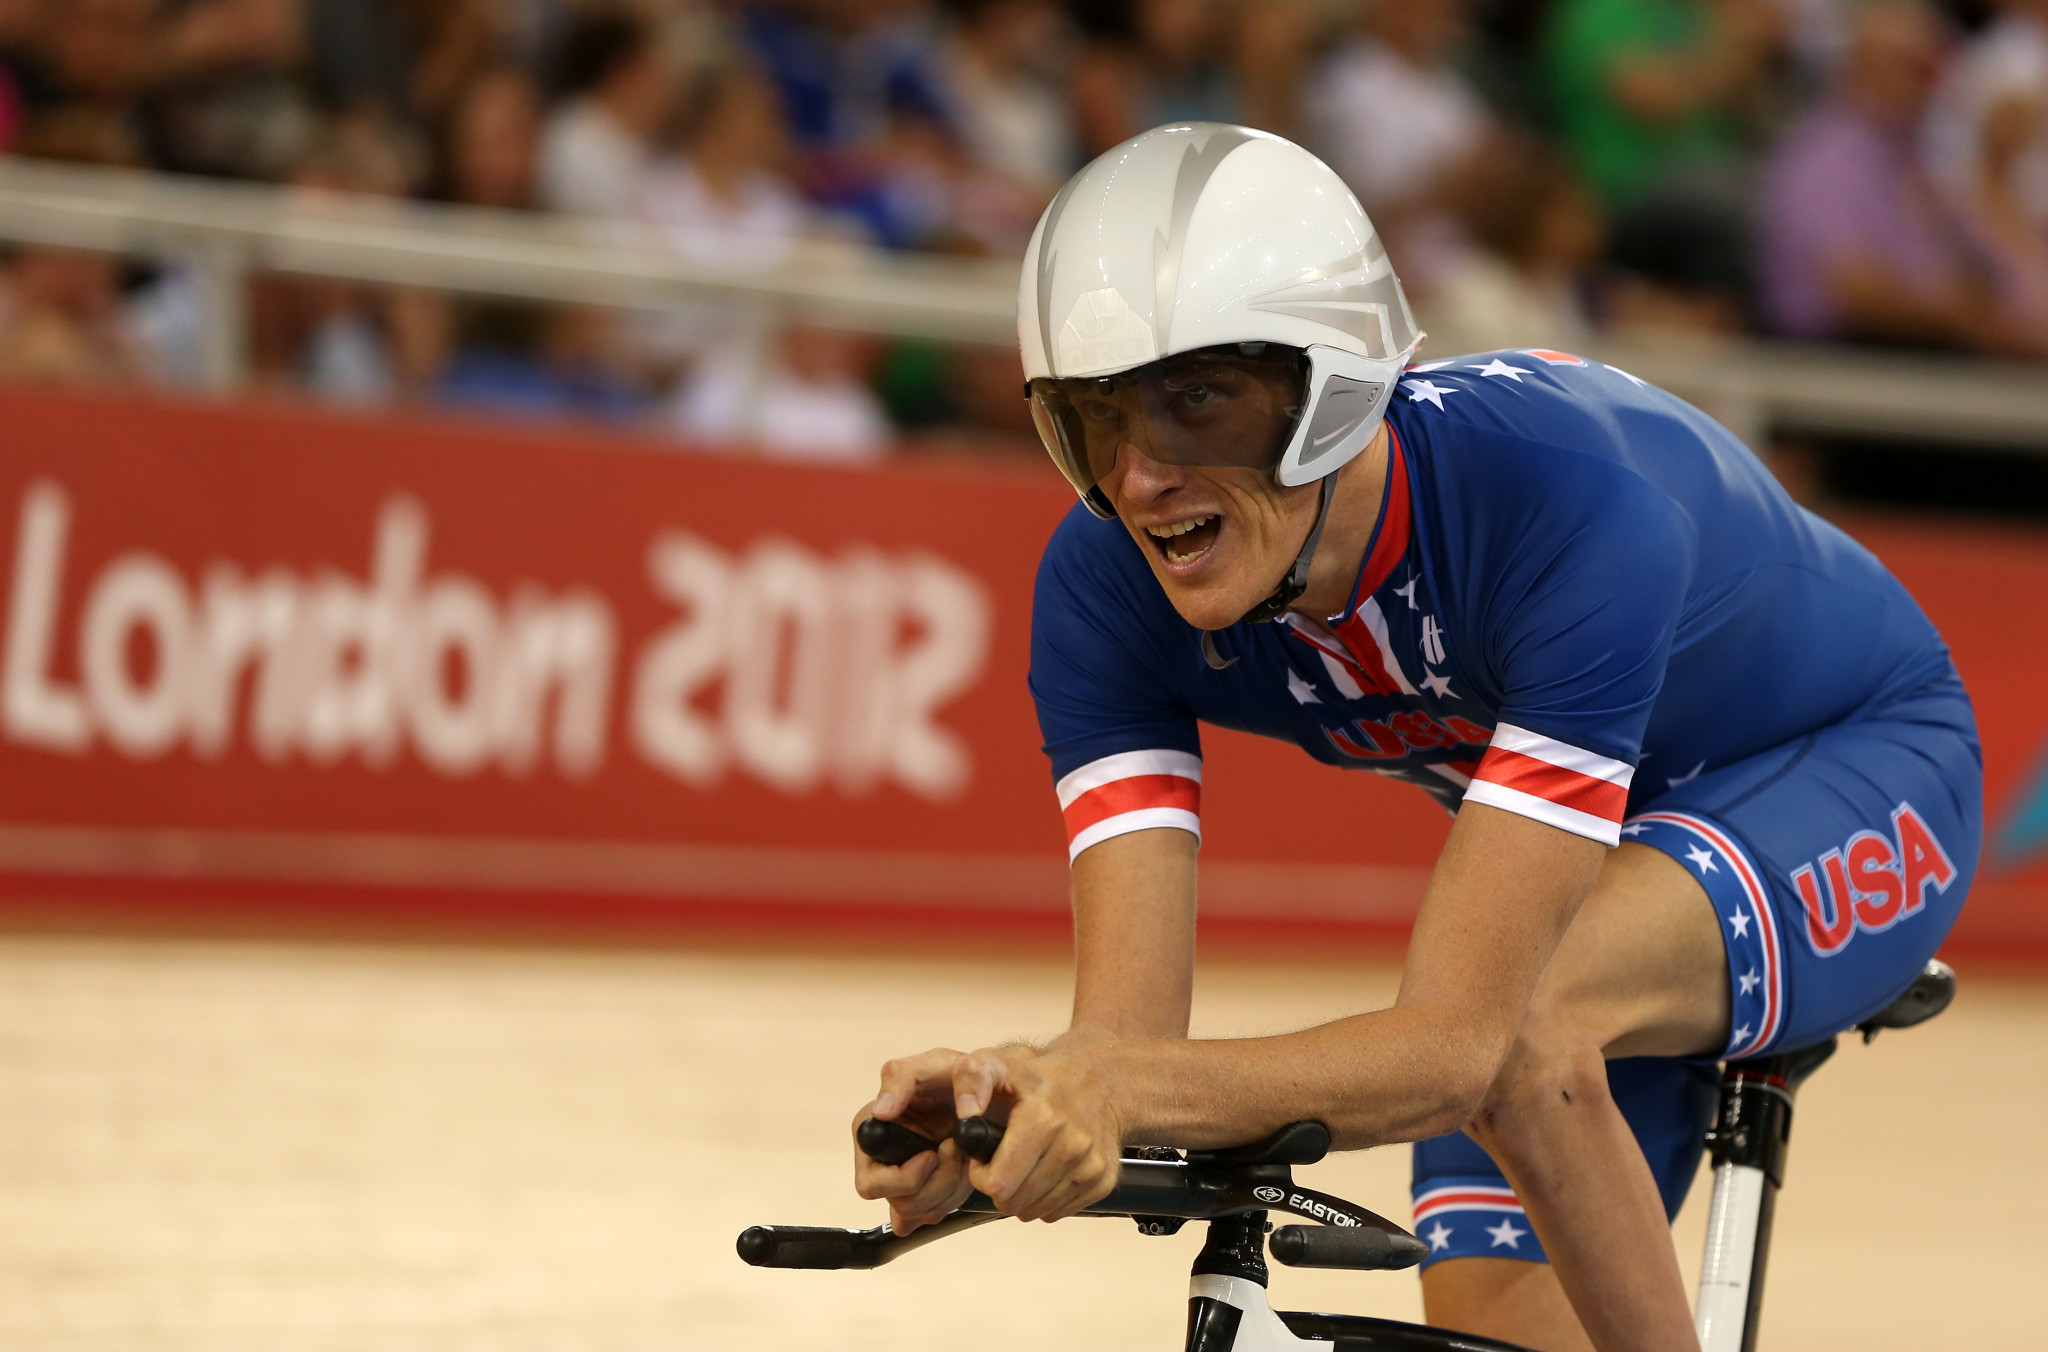 Paralympic Games cycling bronze medallist Zahn dies aged 45